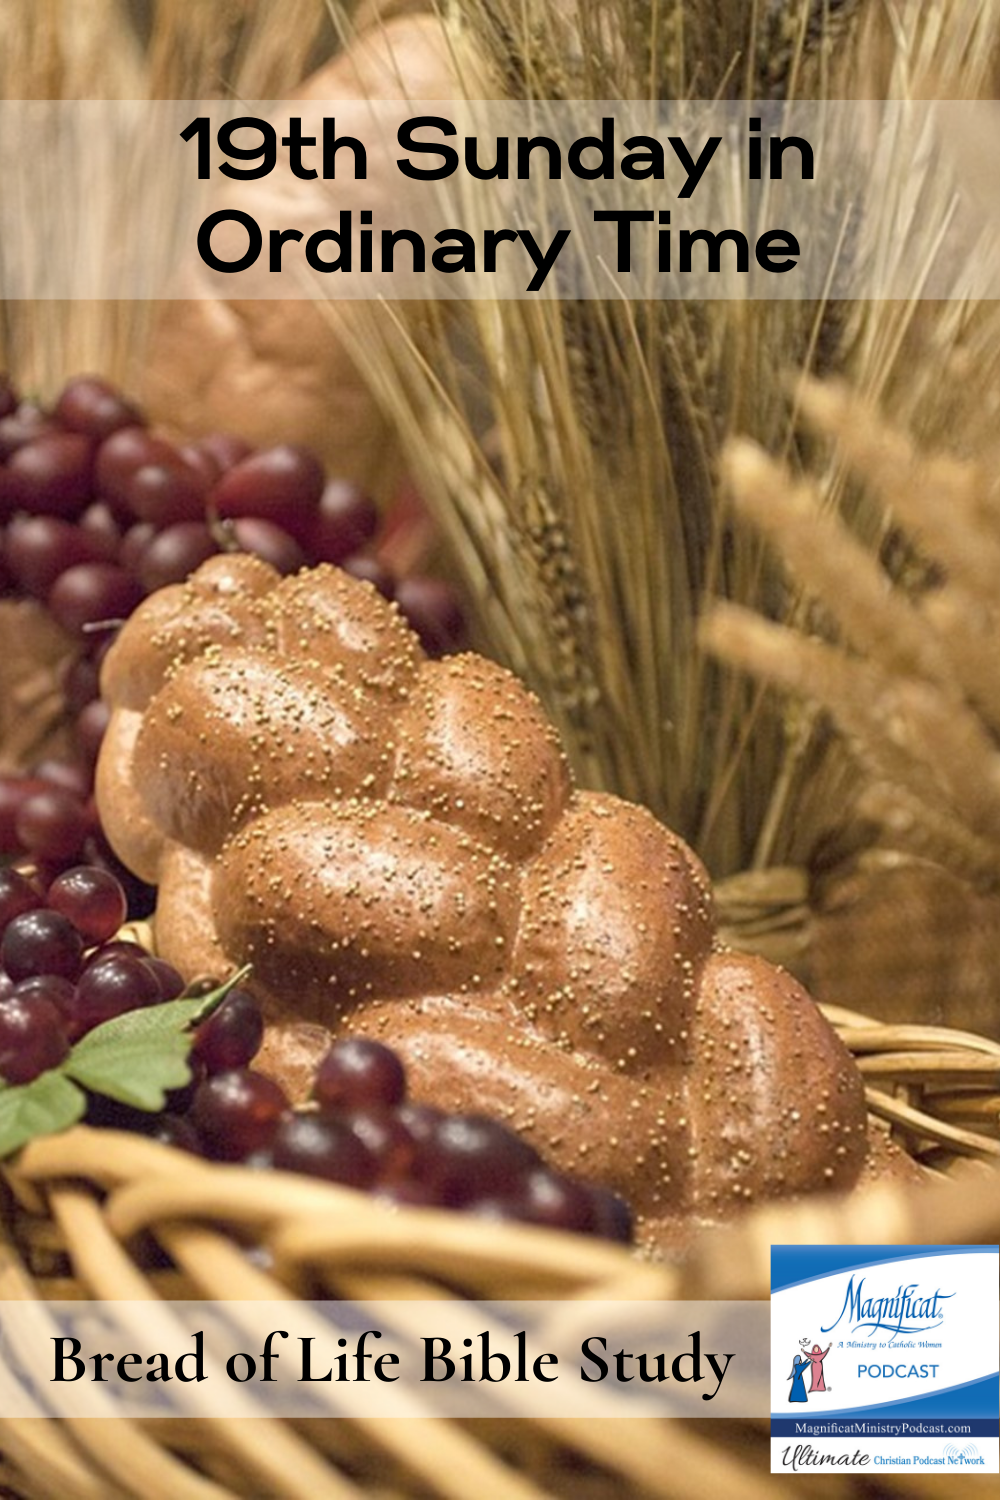 Nineteenth Sunday in Ordinary Time. We need to know and believe that to eat His living bread means to unite ourselves to Jesus.